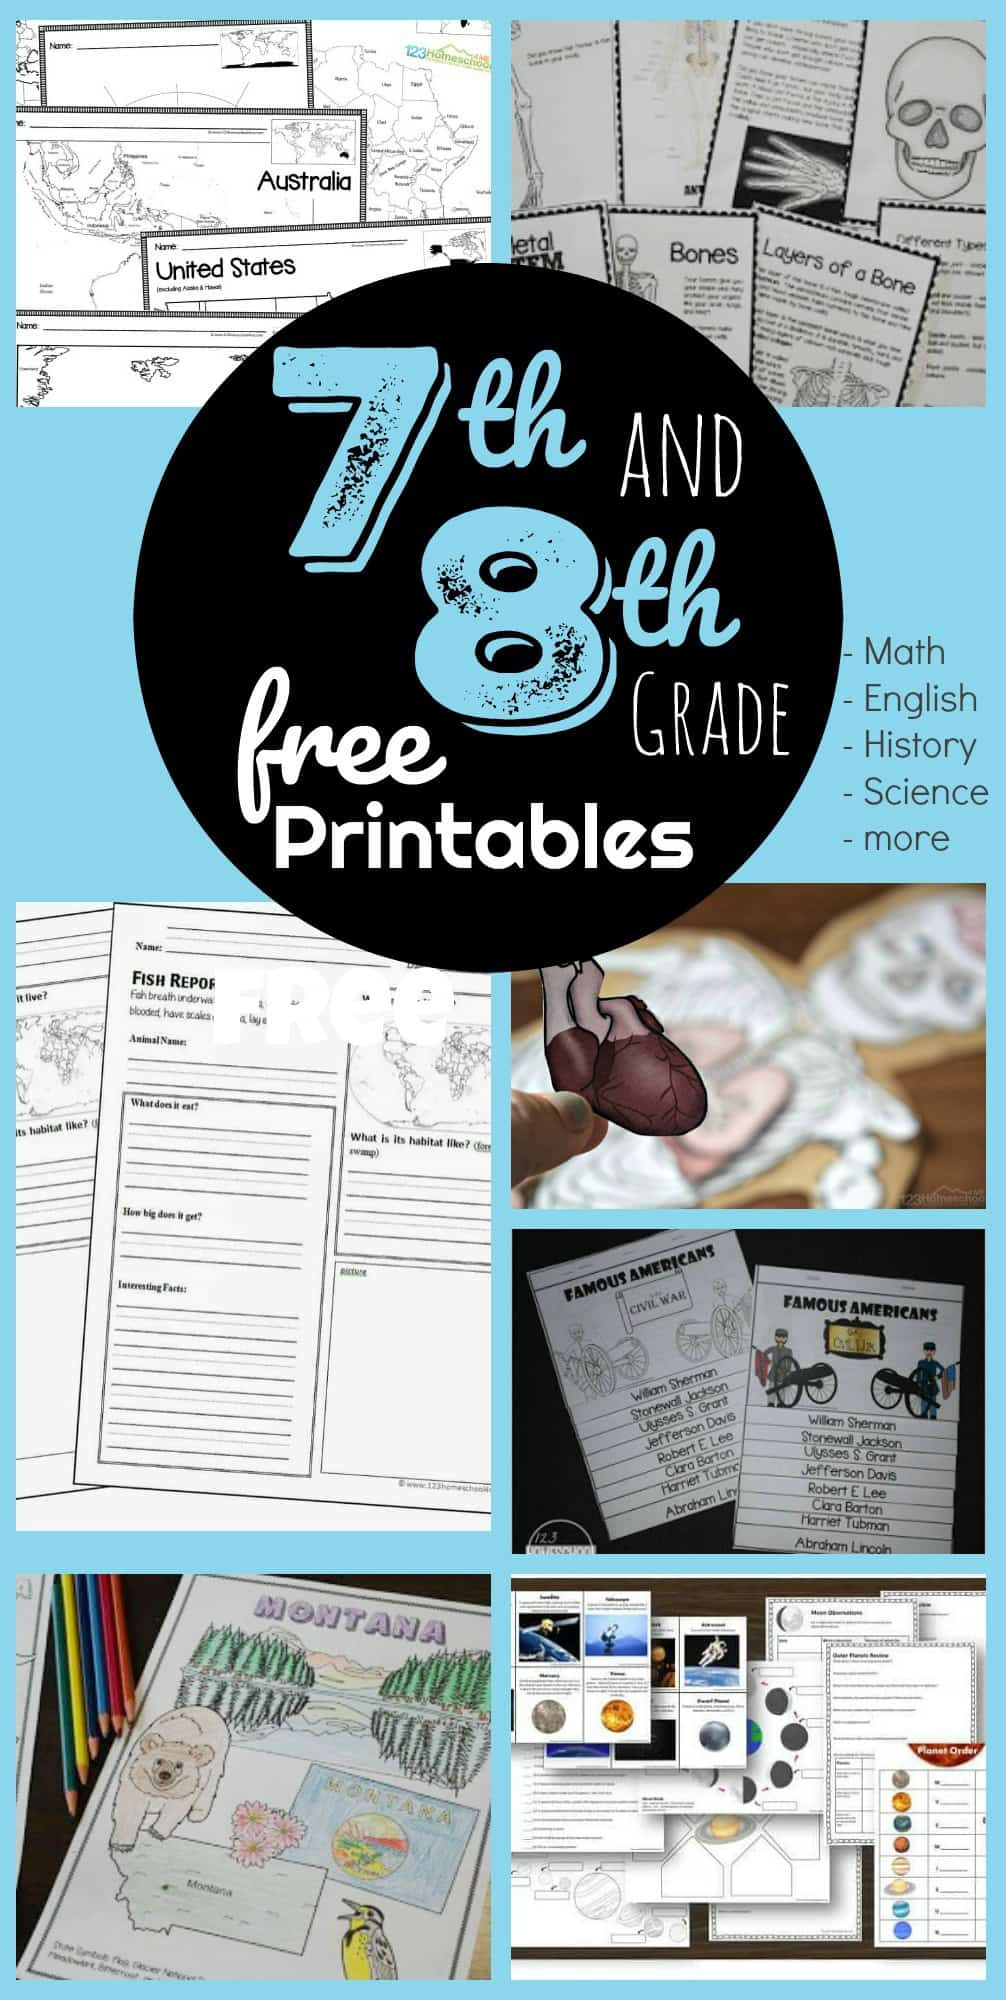 Middle School Science Worksheets Pdf Free 7th & 8th Grade Worksheets